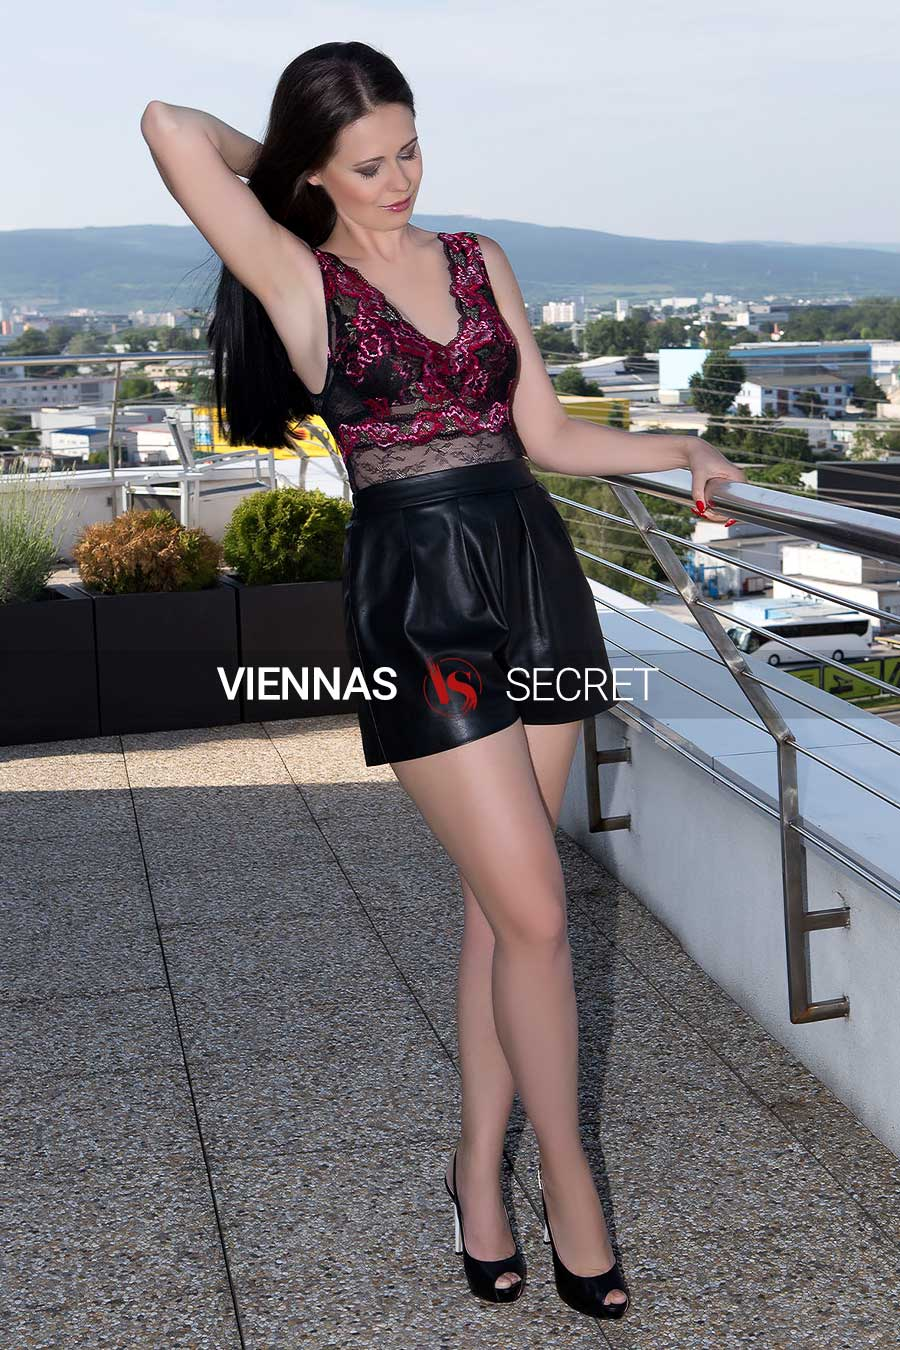 Diana 26 - Independent Escort dressed in leather